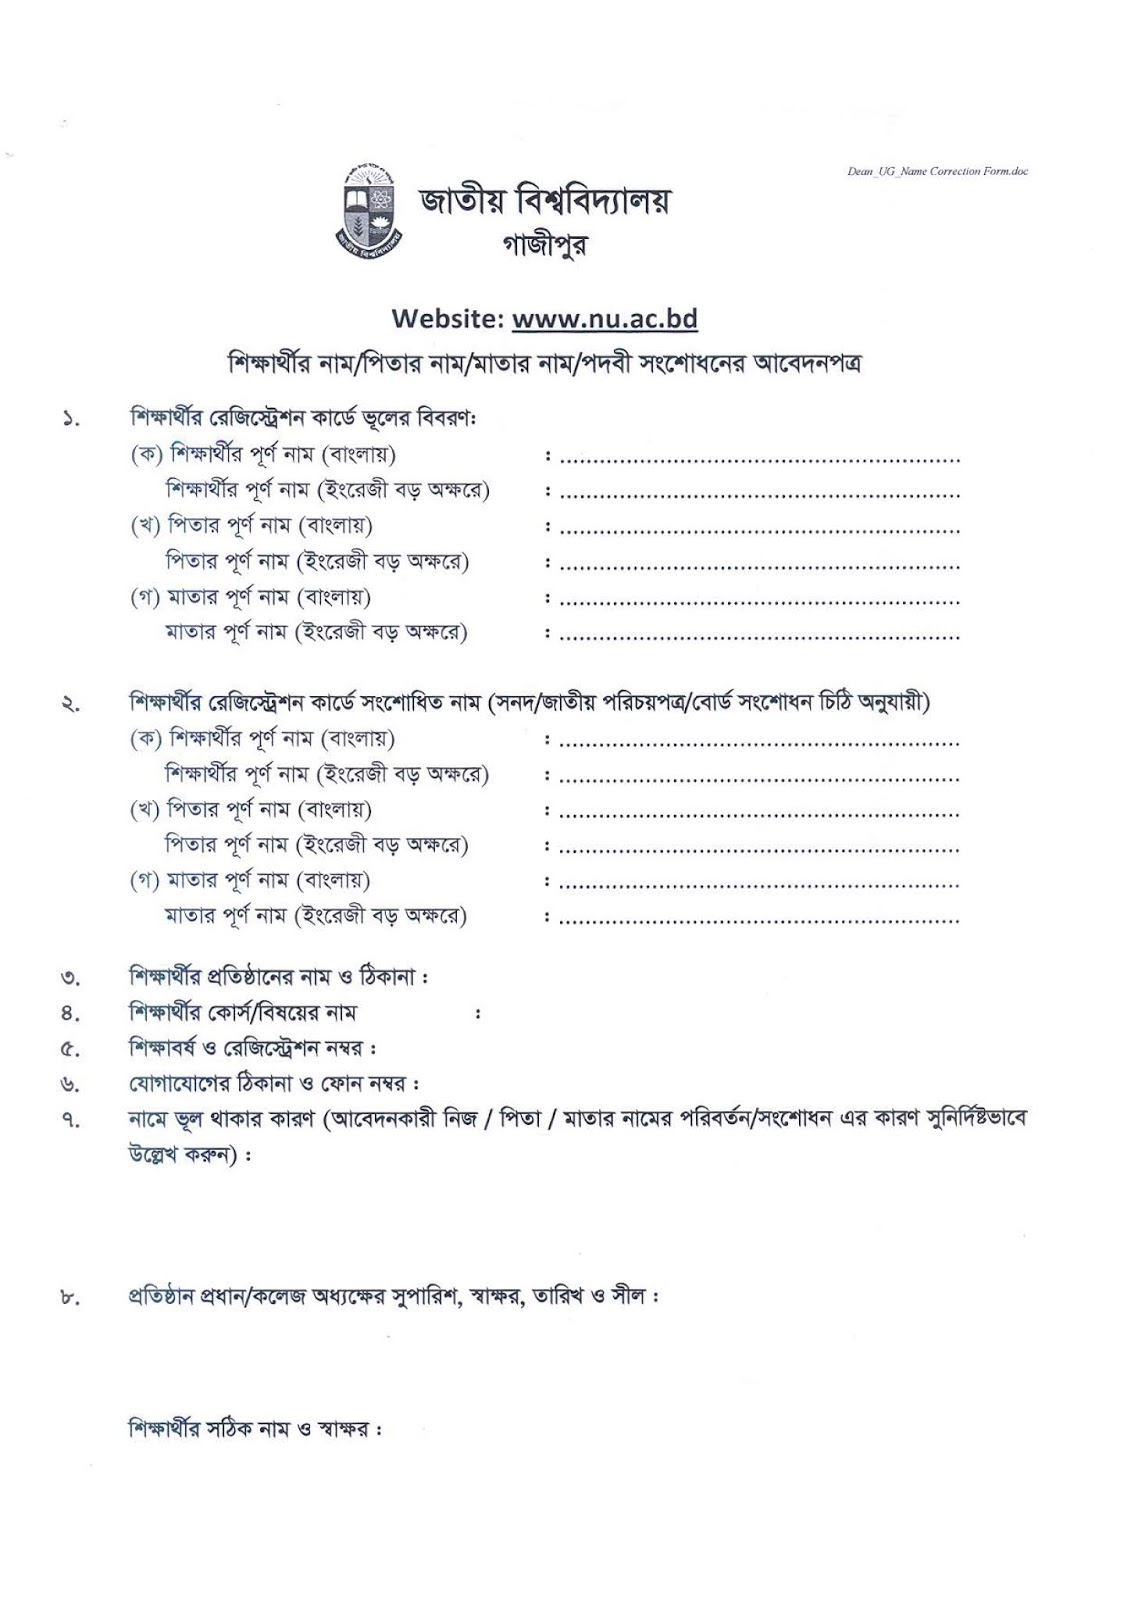 Nu Certificate Name Correction Form Updated 2019